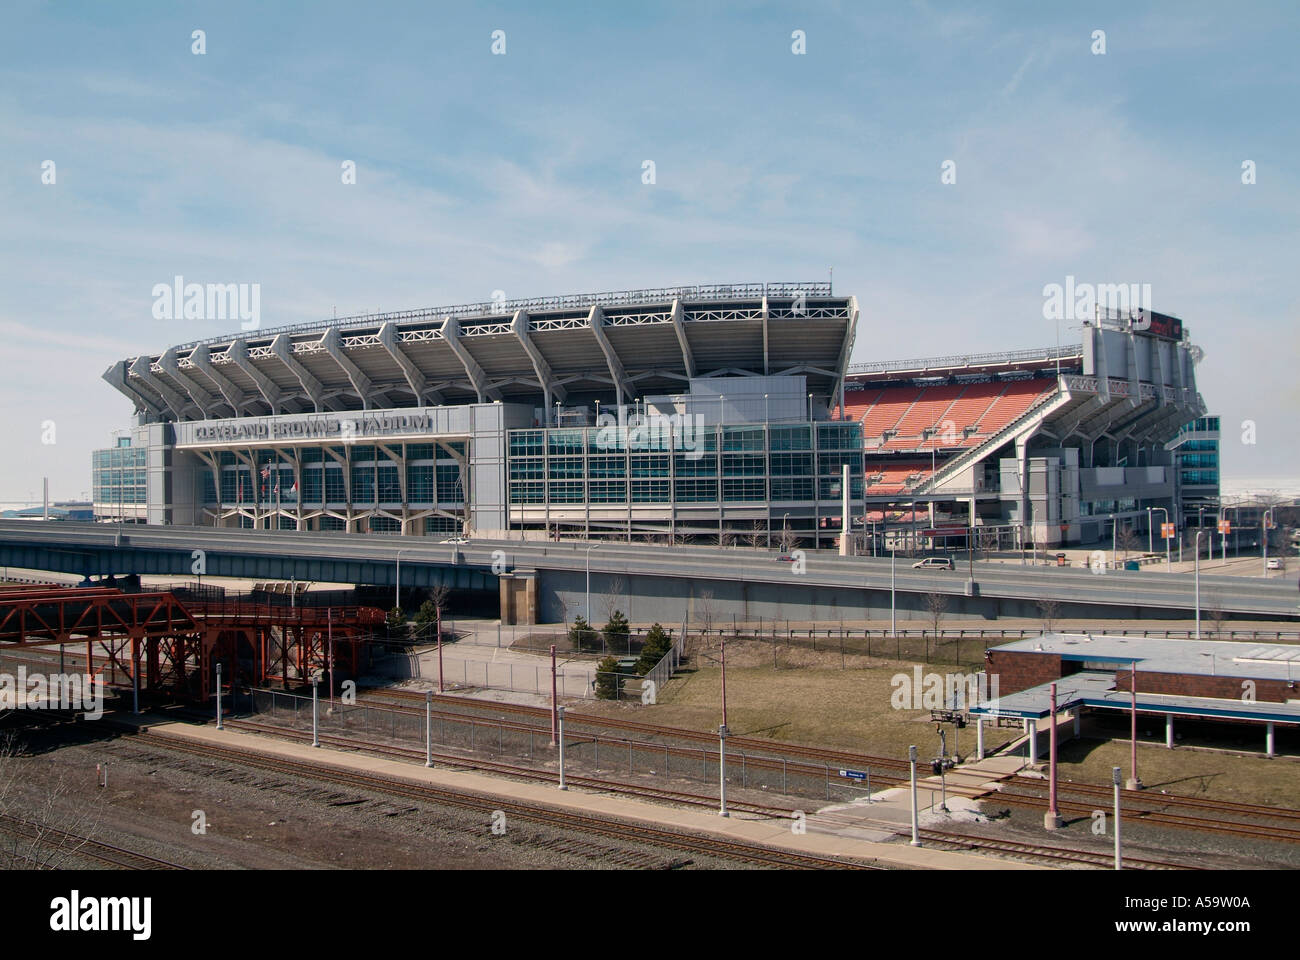 Downtown Cleveland Ohio sightseeing landmarks and tourist attractions  Cleveland Browns Football Stadium - Stock Image